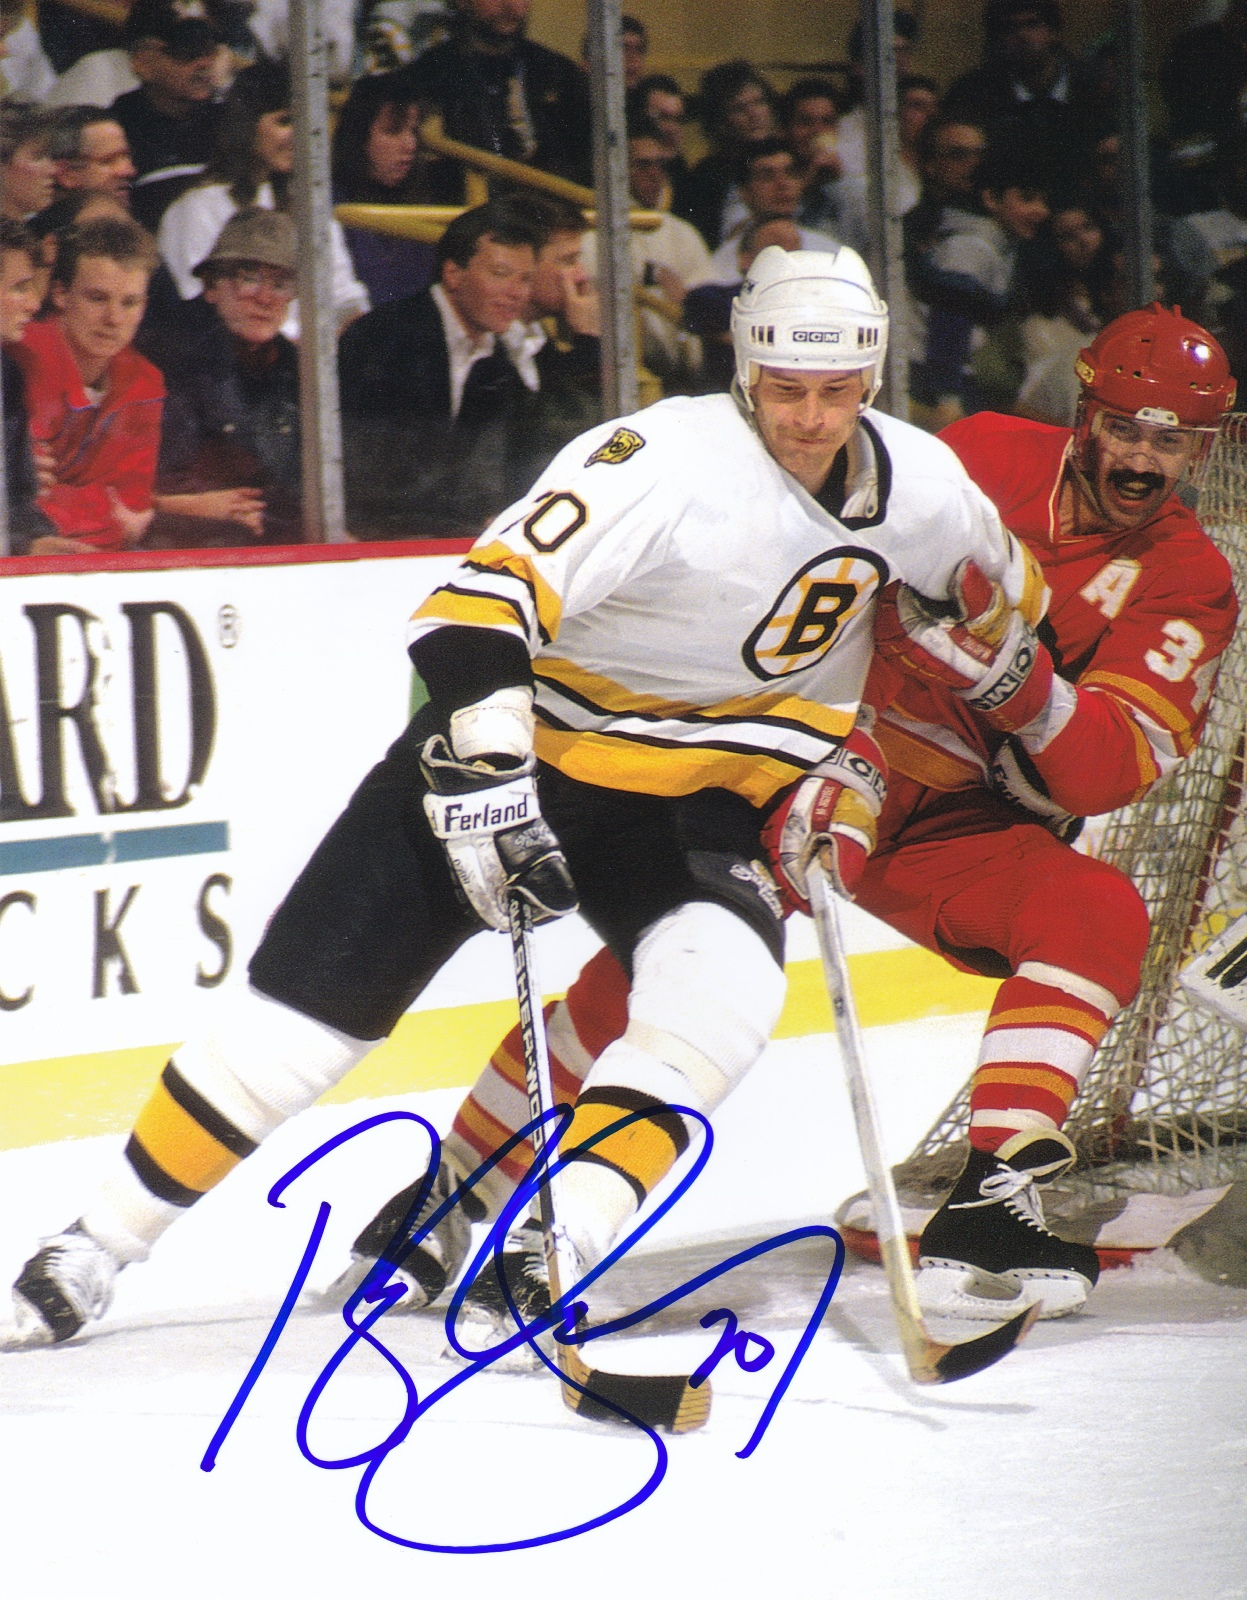 Bob Sweeney Autograph 8x10 Color photo Boston Bruins